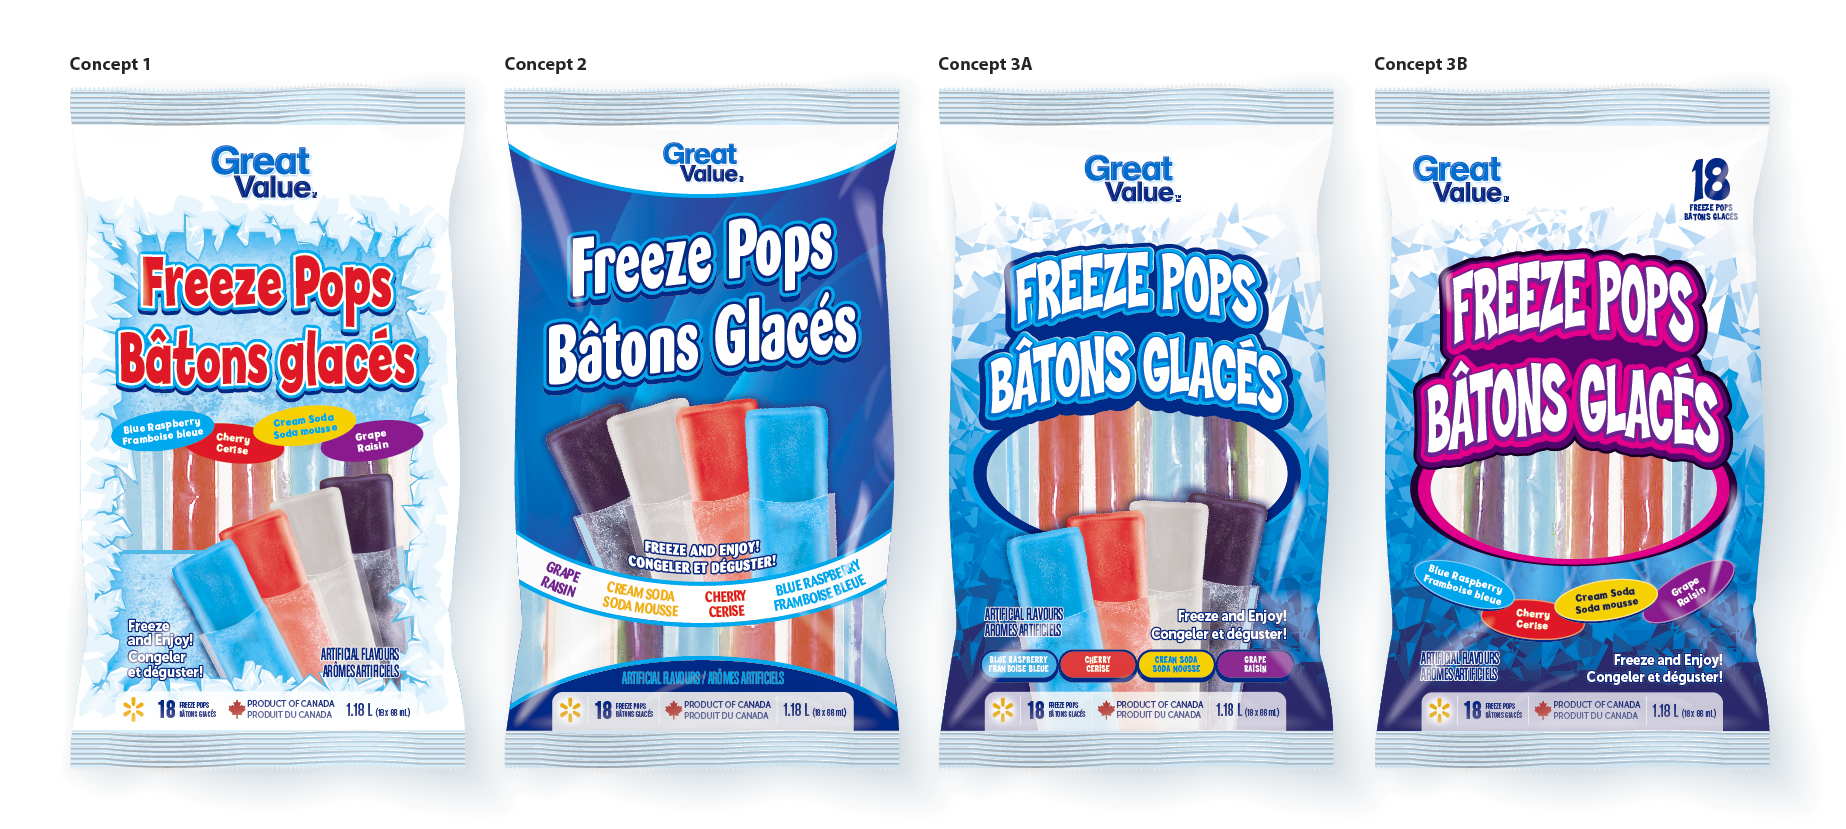 Freeze Pops - 3D concepts